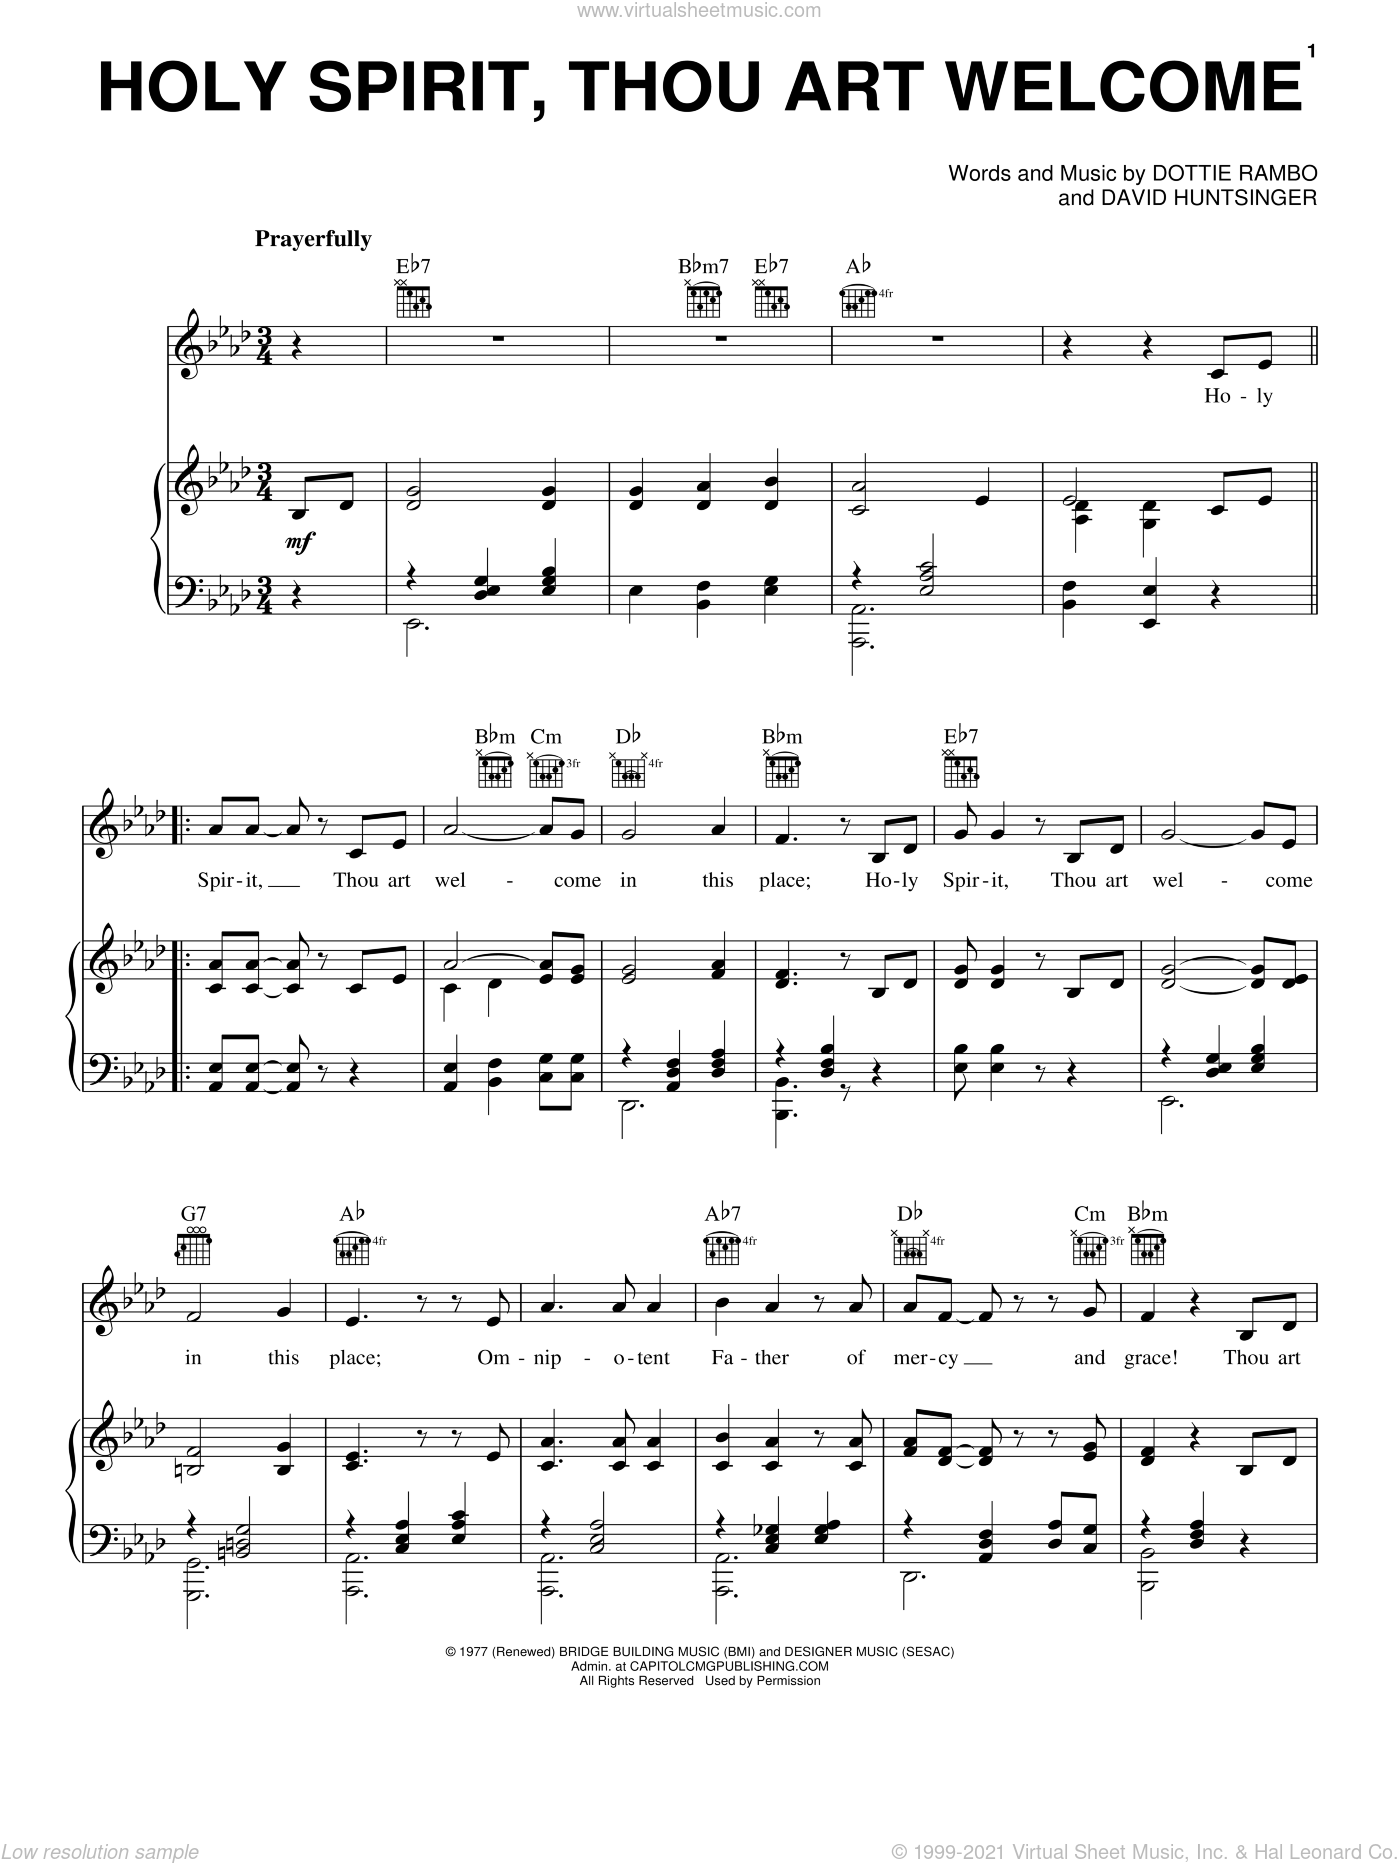 Holy Spirit, Thou Art Welcome sheet music for voice, piano or guitar by David Huntsinger and Dottie Rambo. Score Image Preview.